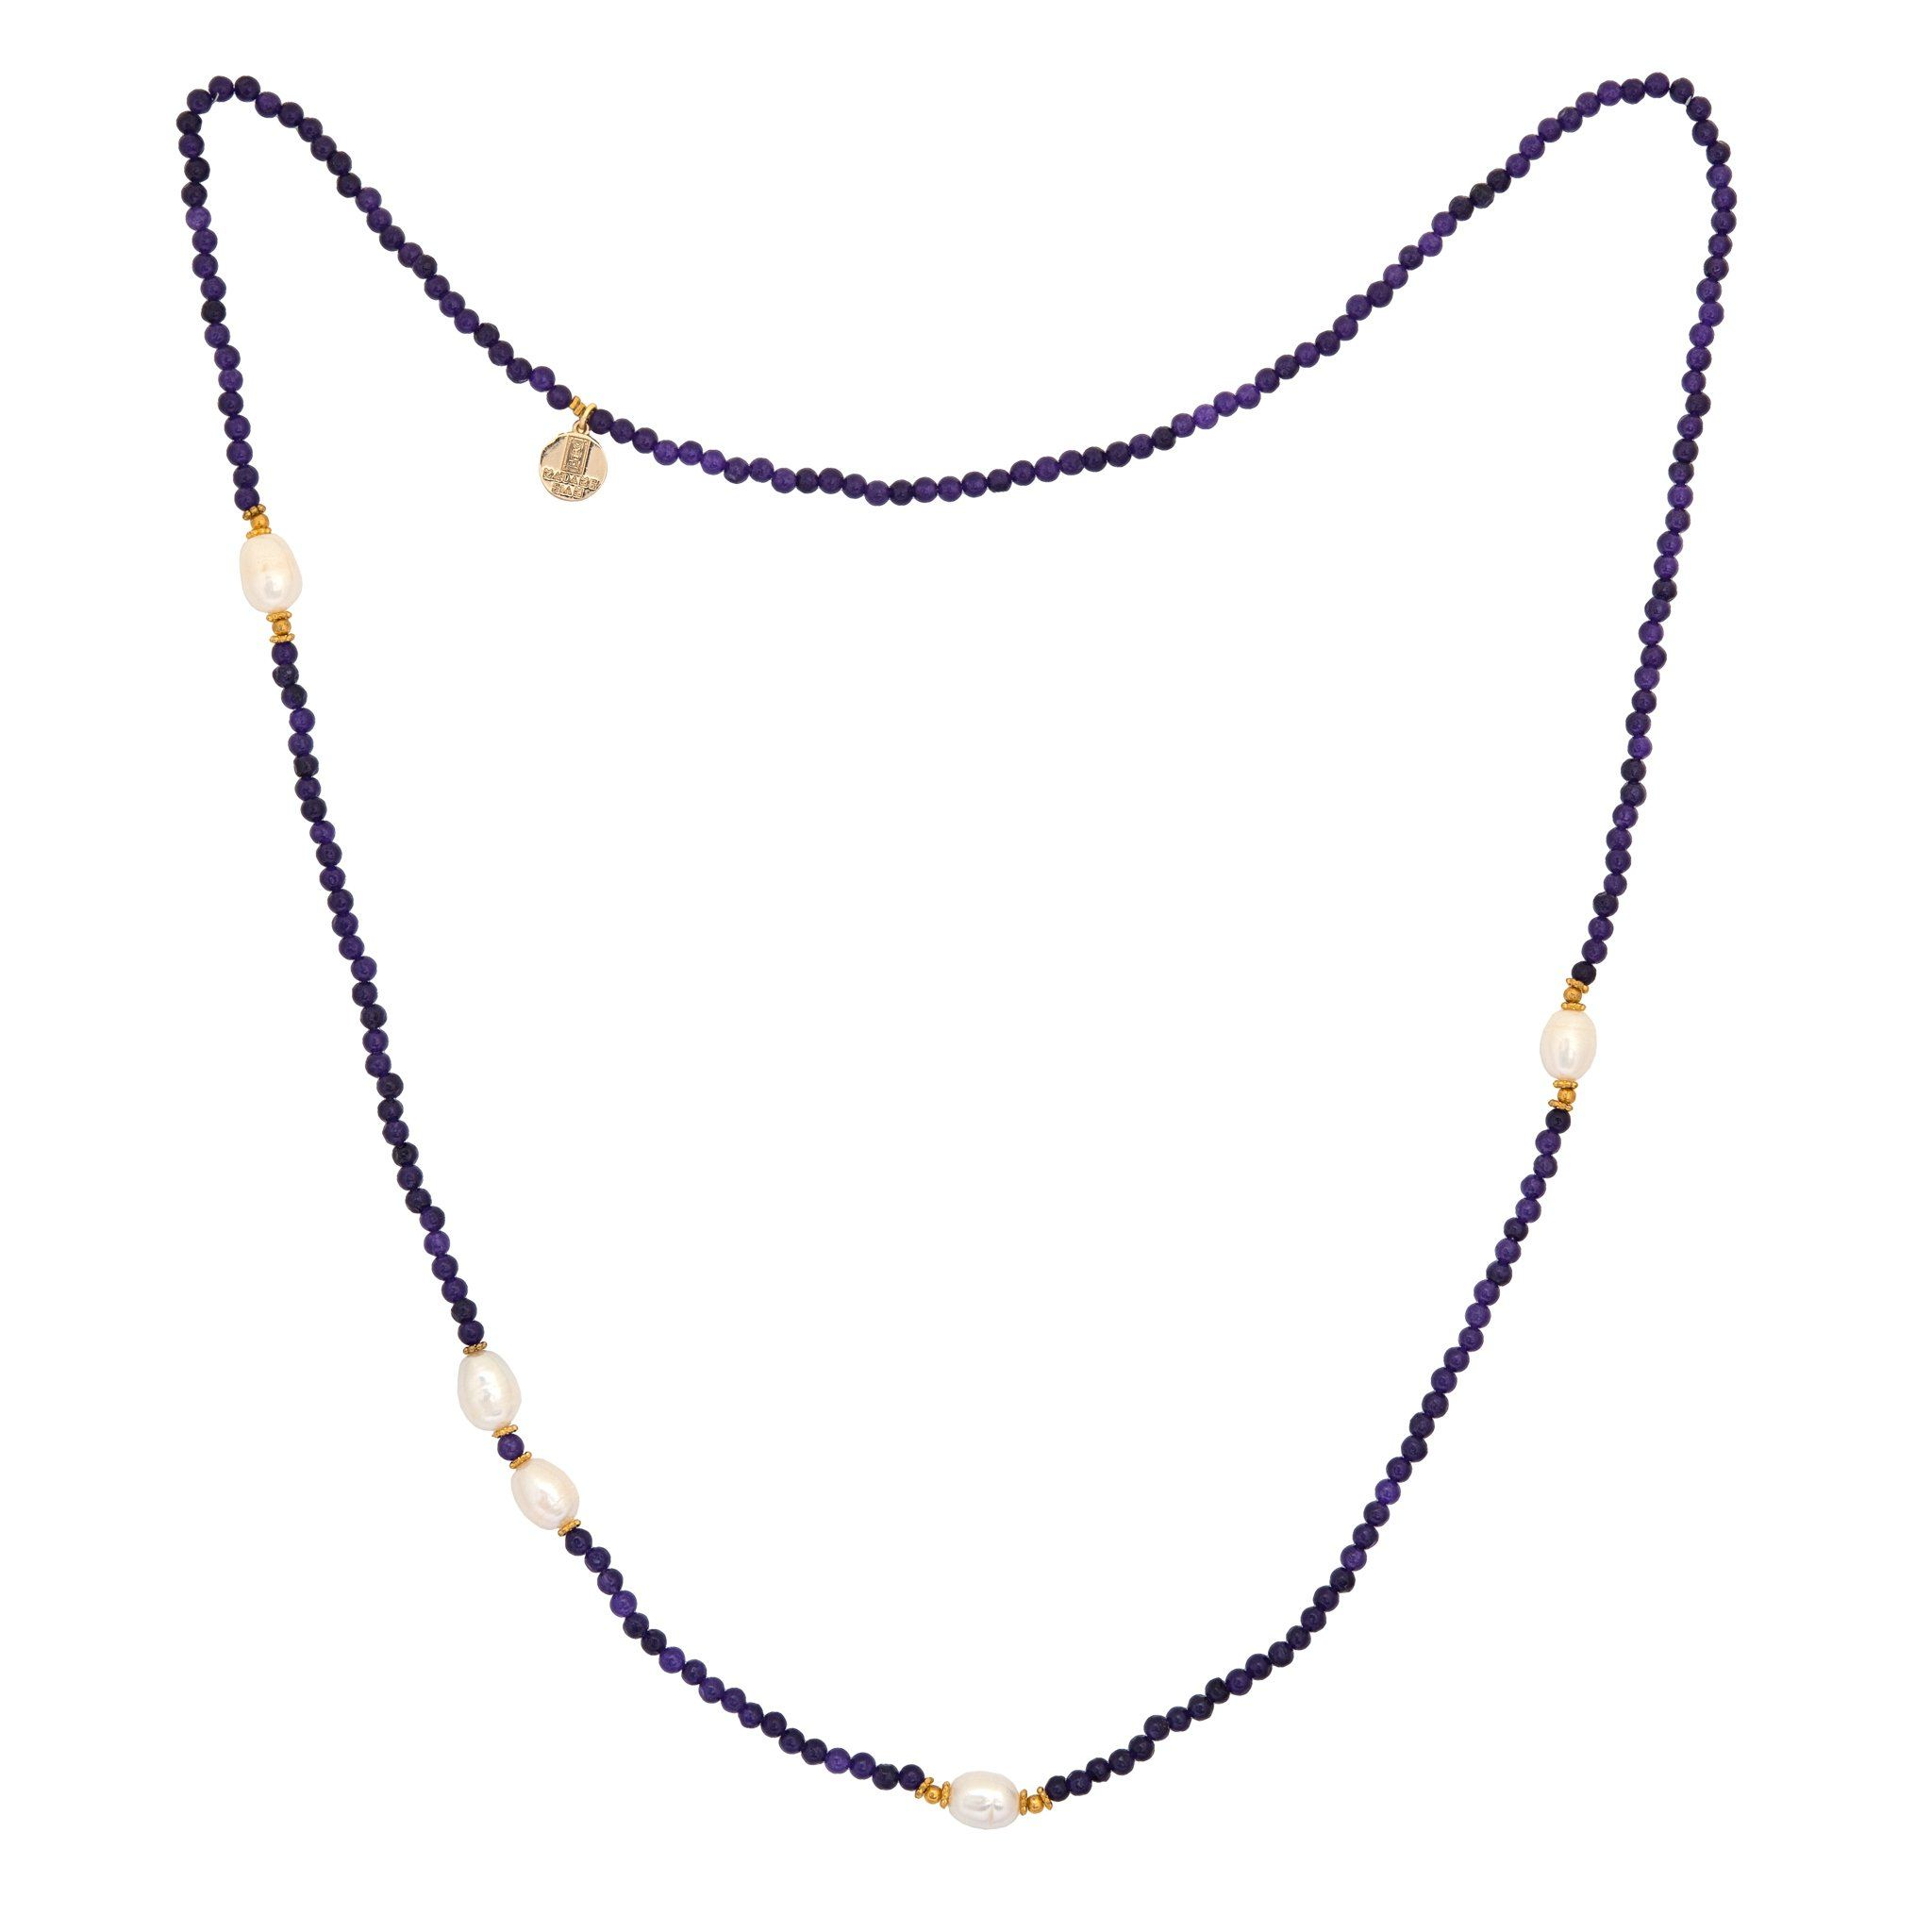 KIMUKA pearls and amethyst necklace - MadamSiam